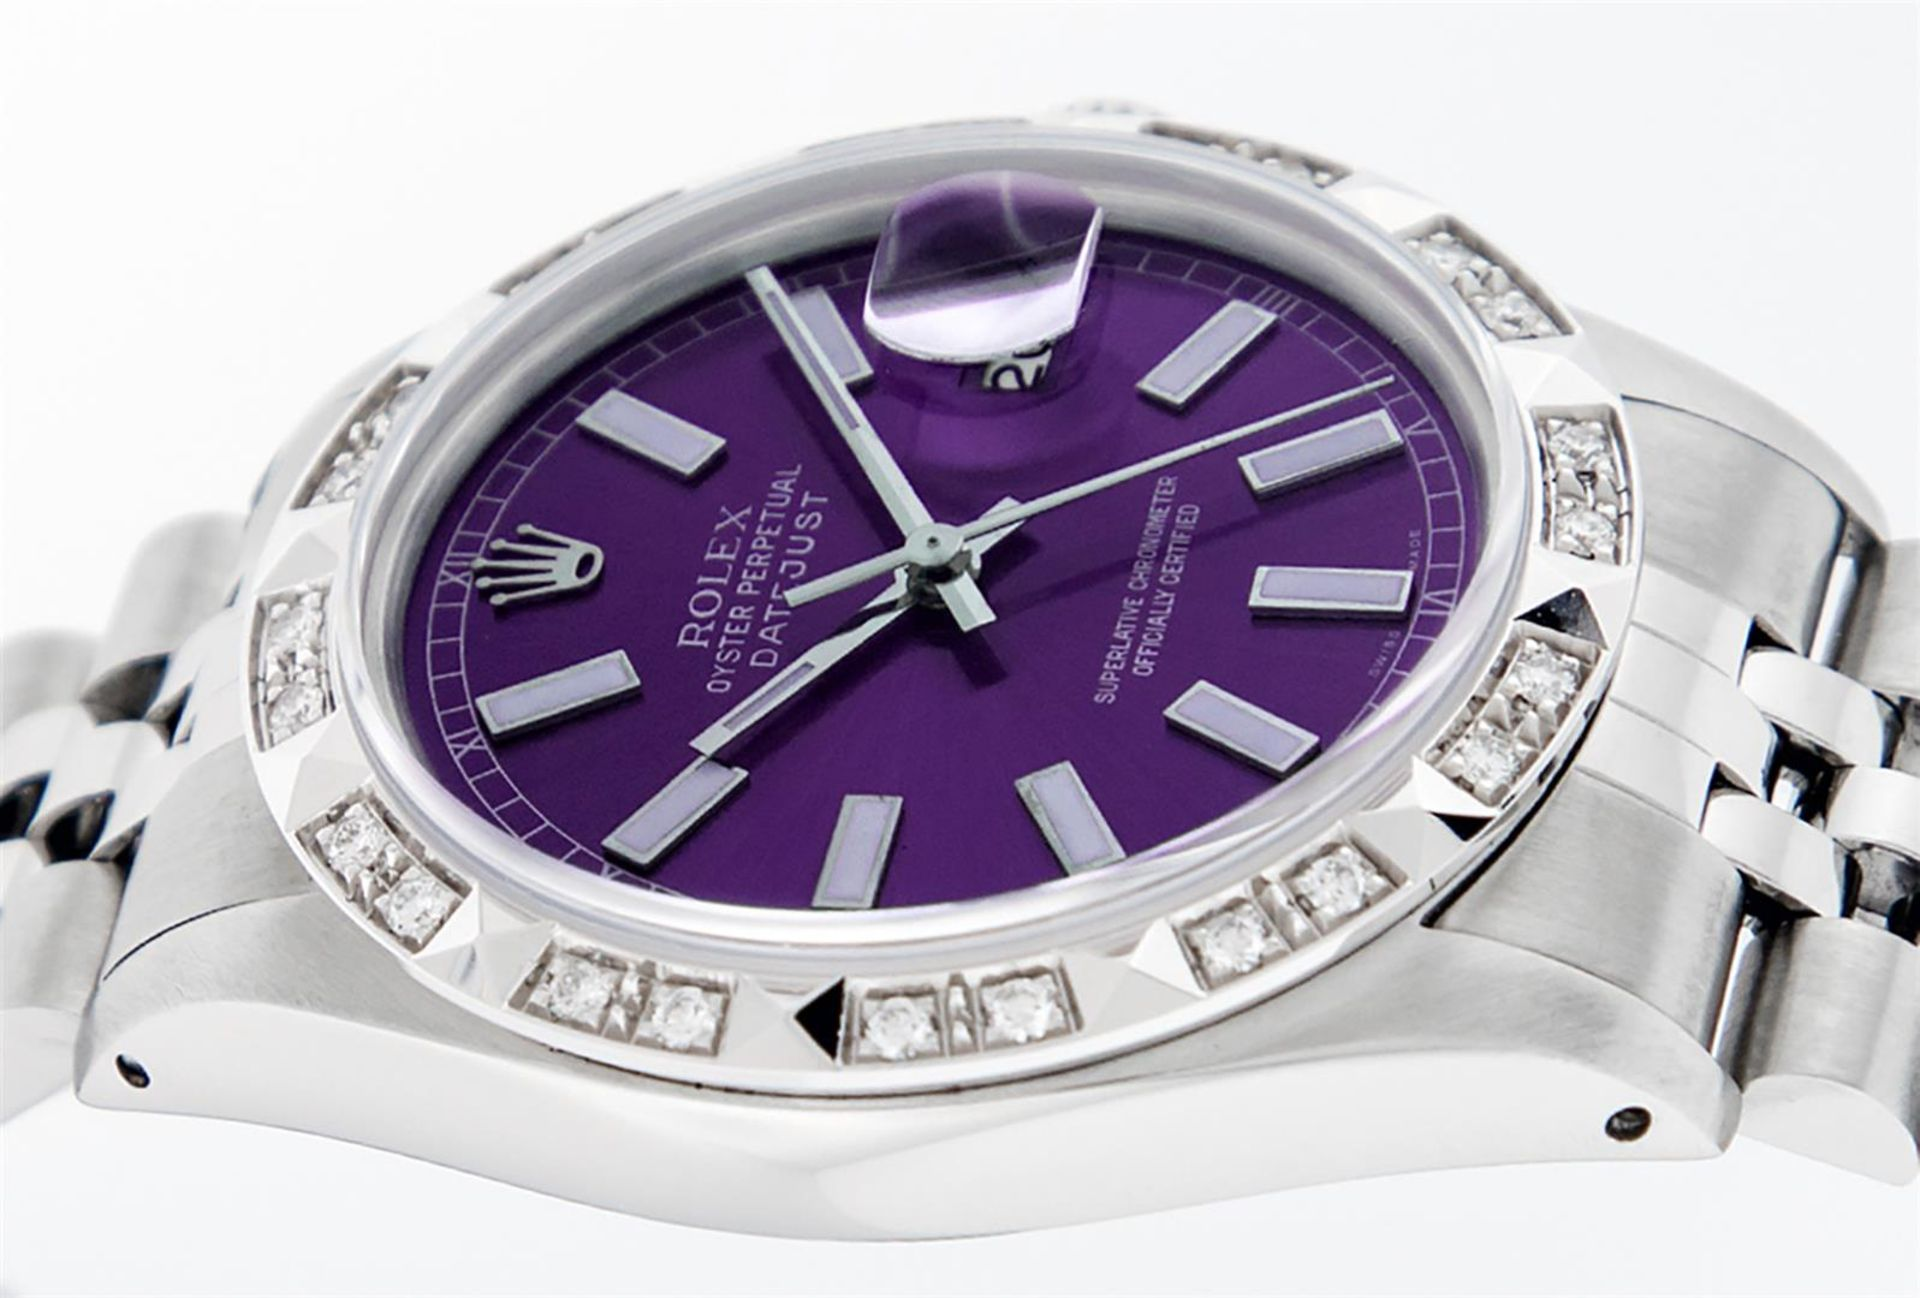 Rolex Mens Stainless Steel 36MM Purple Index Pyramid Diamond Datejust Wristwatch - Image 9 of 9